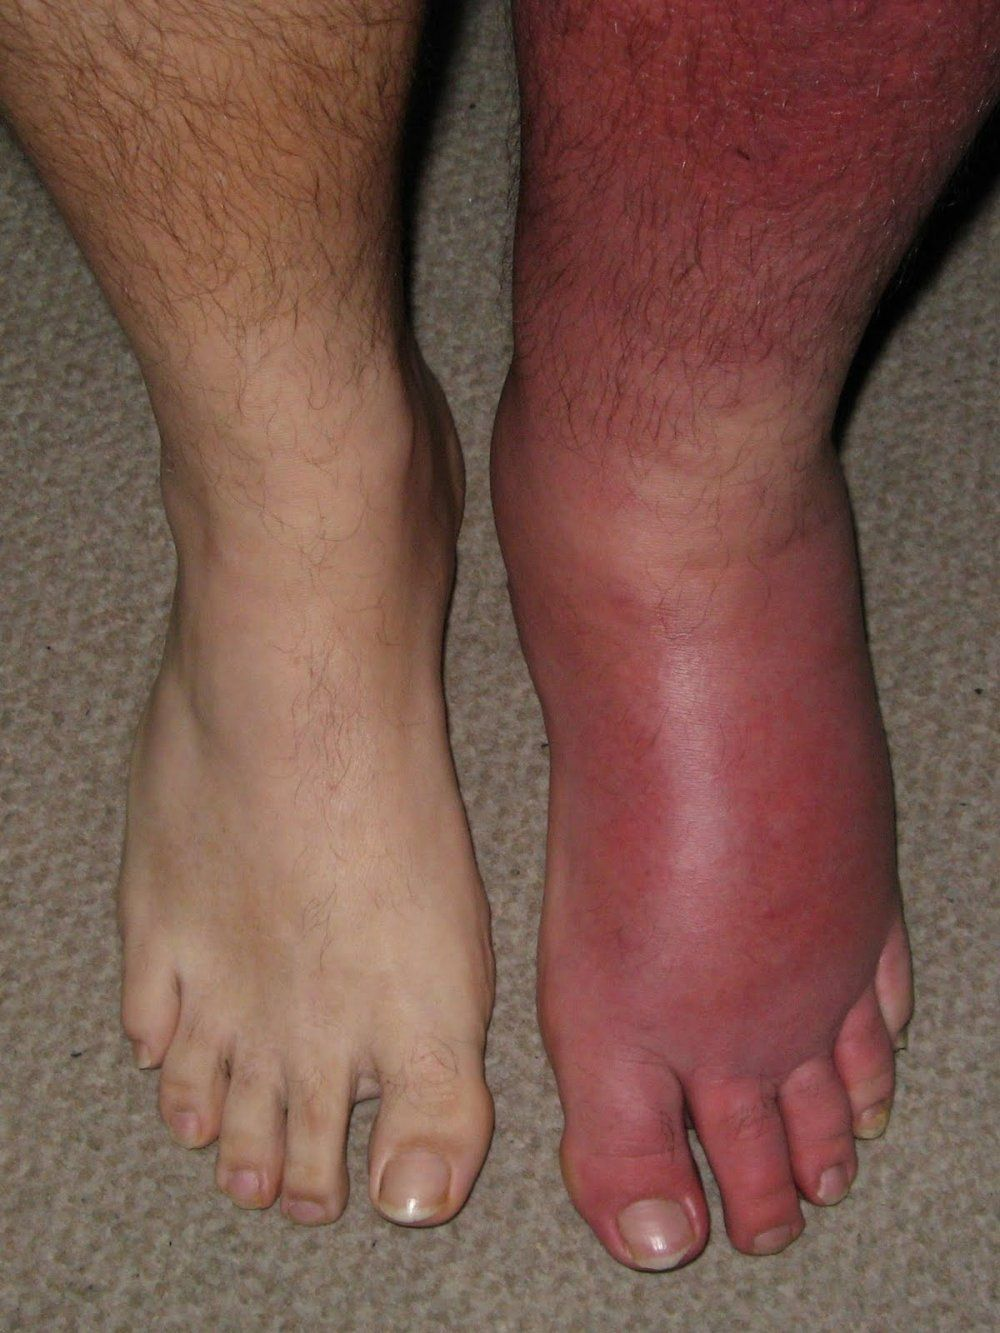 Cellulitis on the feet: how to get rid 96